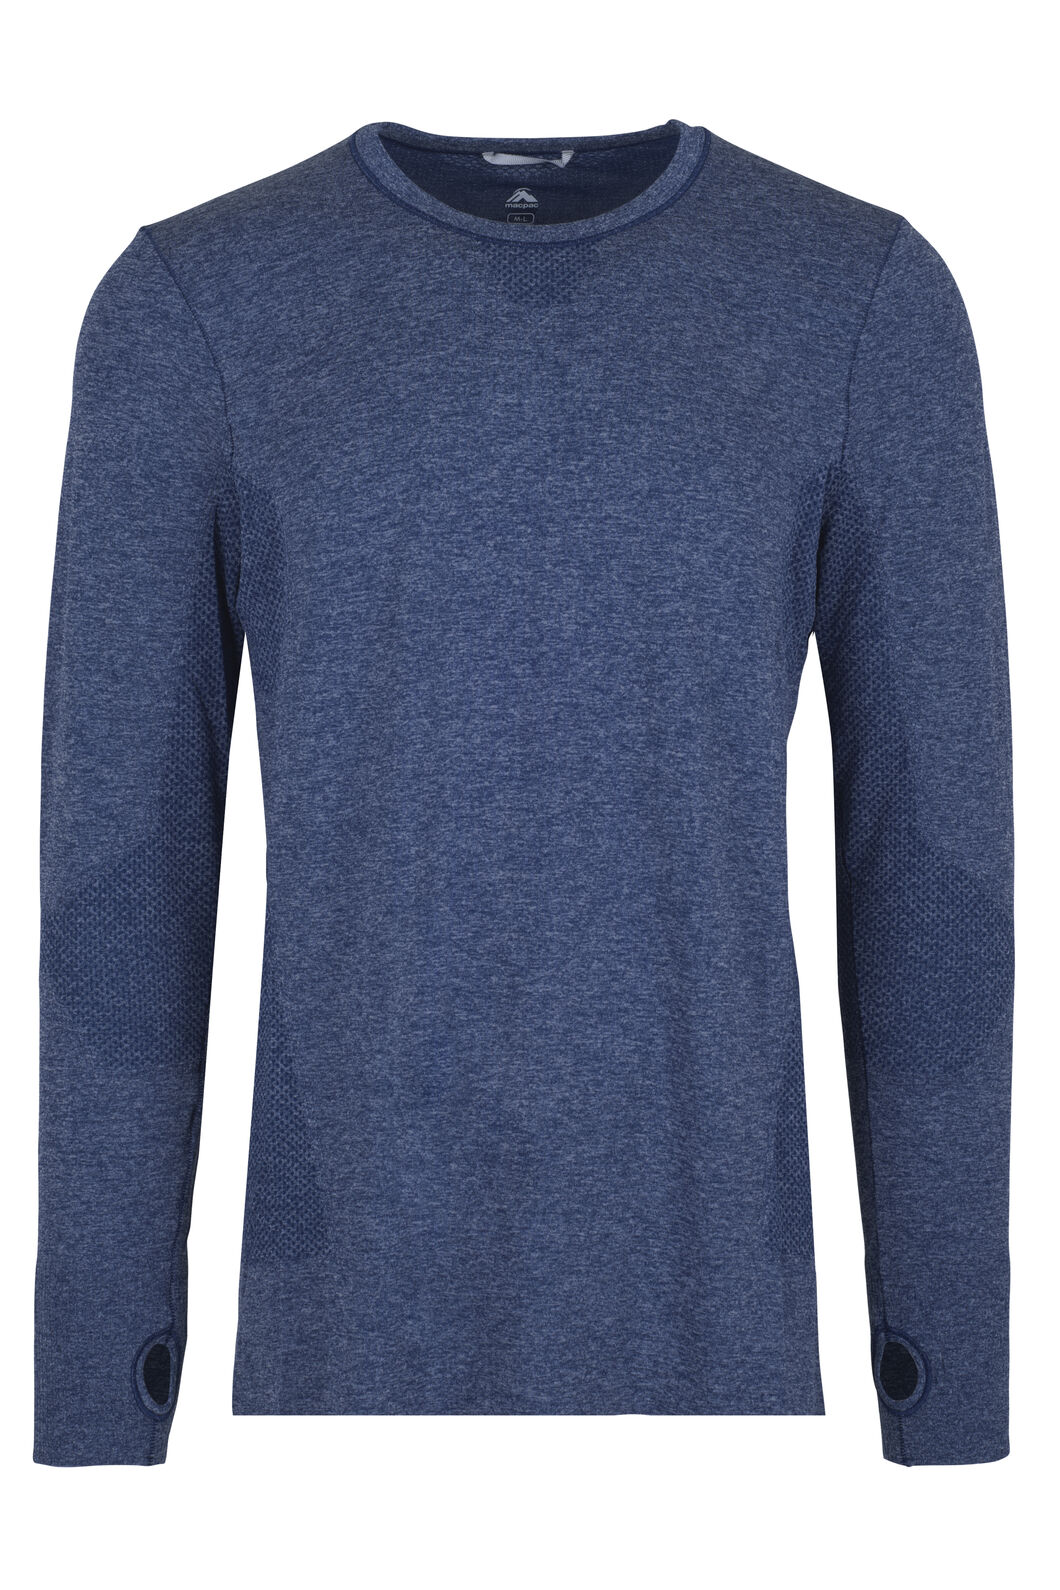 Macpac Limitless Long Sleeve Tee - Men's, Medieval Blue, hi-res